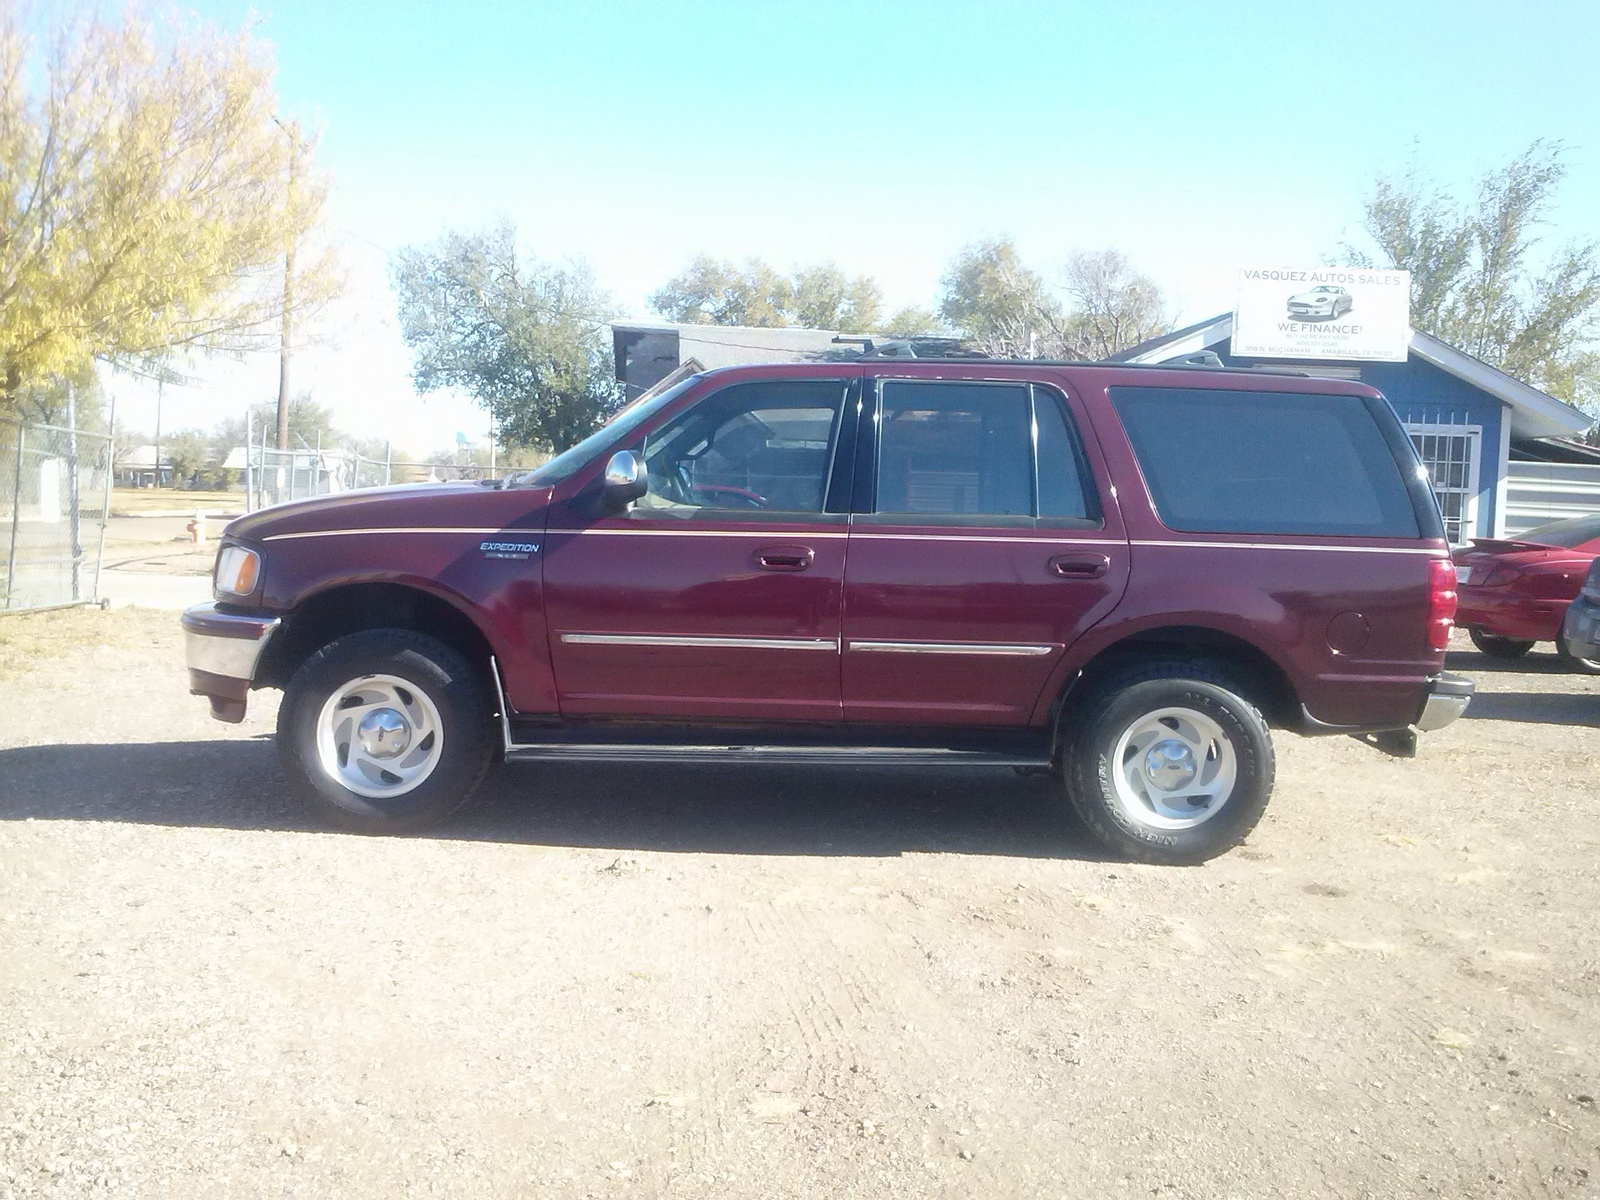 Ford expedition 1997 photo - 9